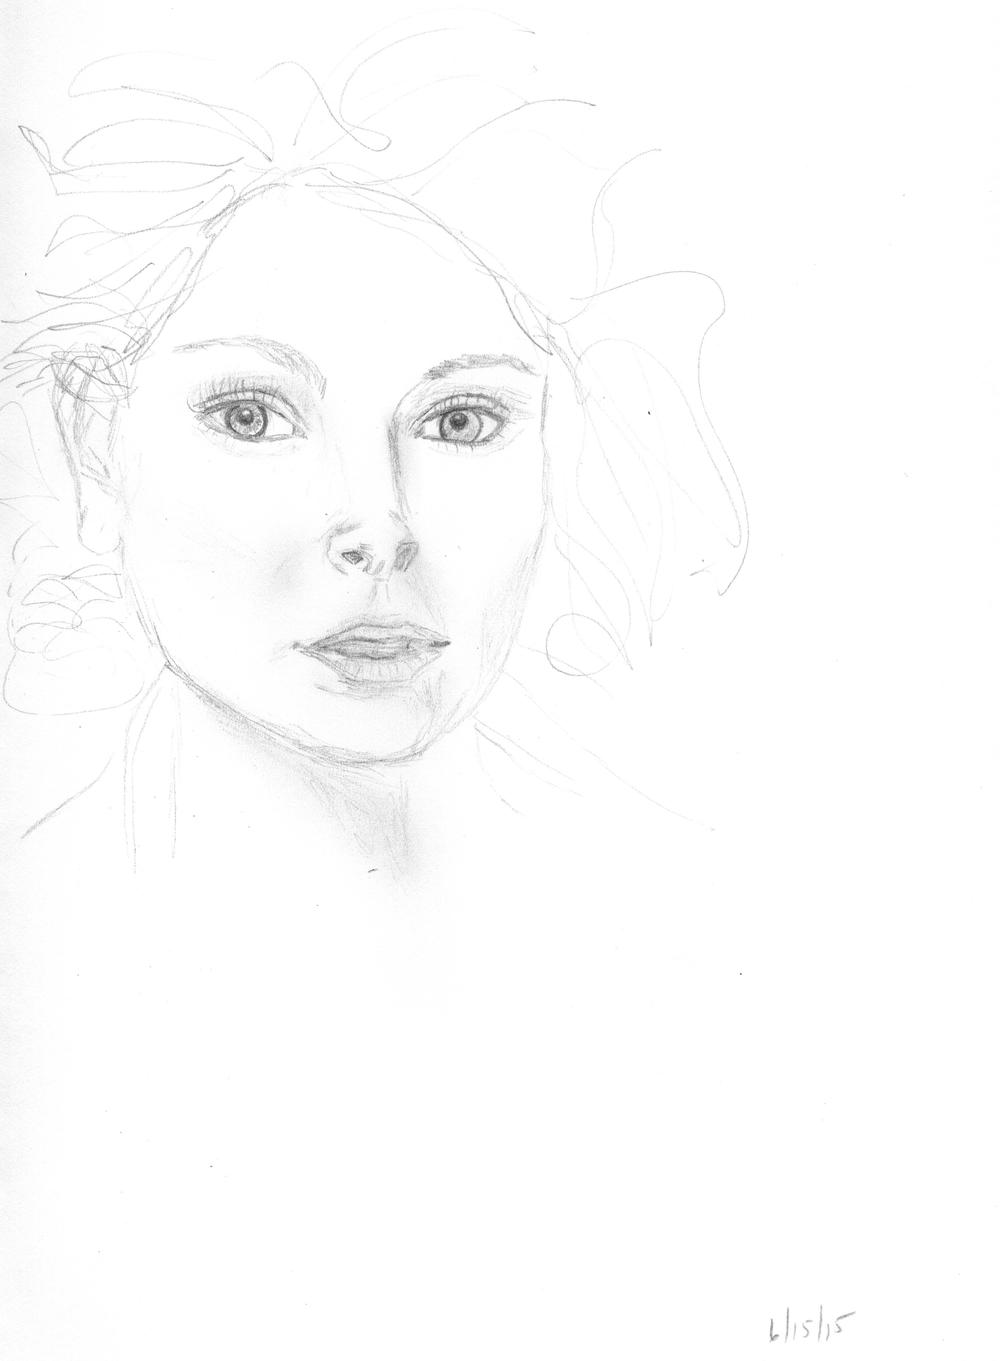 This drawing took an hour - and I still didn't get her pupils quite right.  However, I was drinking a glass of wine, so maybe that's how it looked to me.